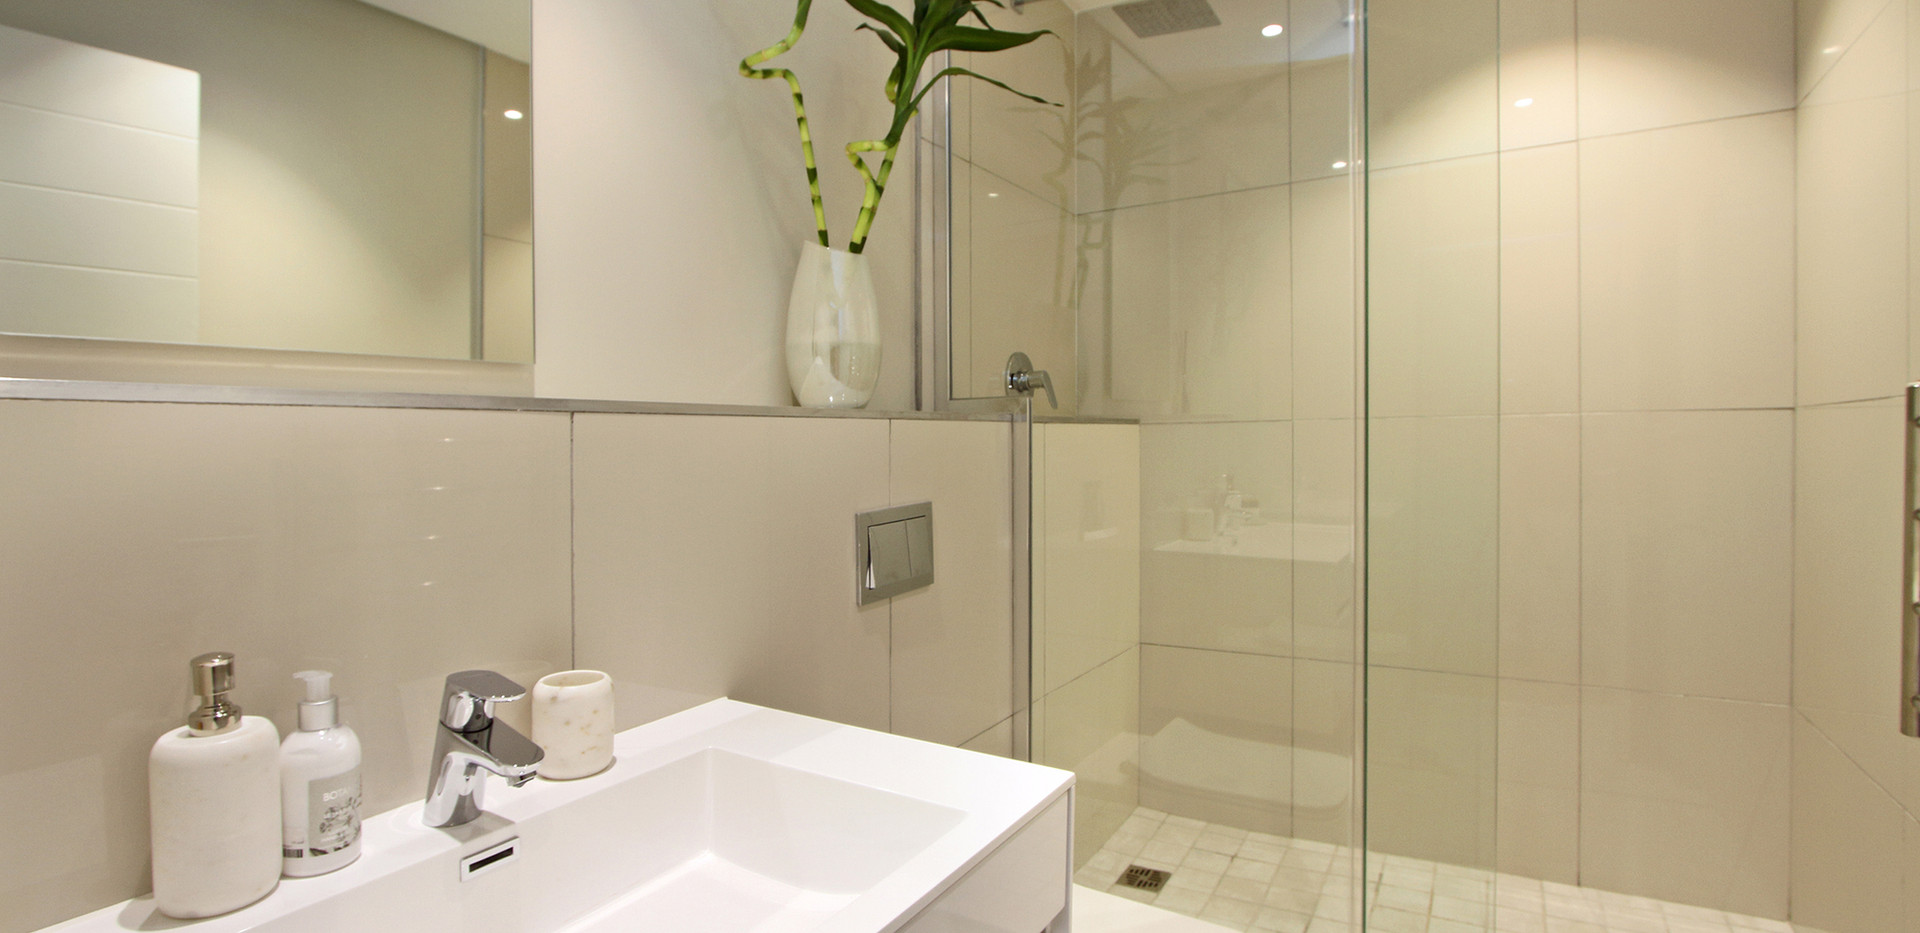 Bathroom_1bedroom_Docklands_ITC_1.jpg